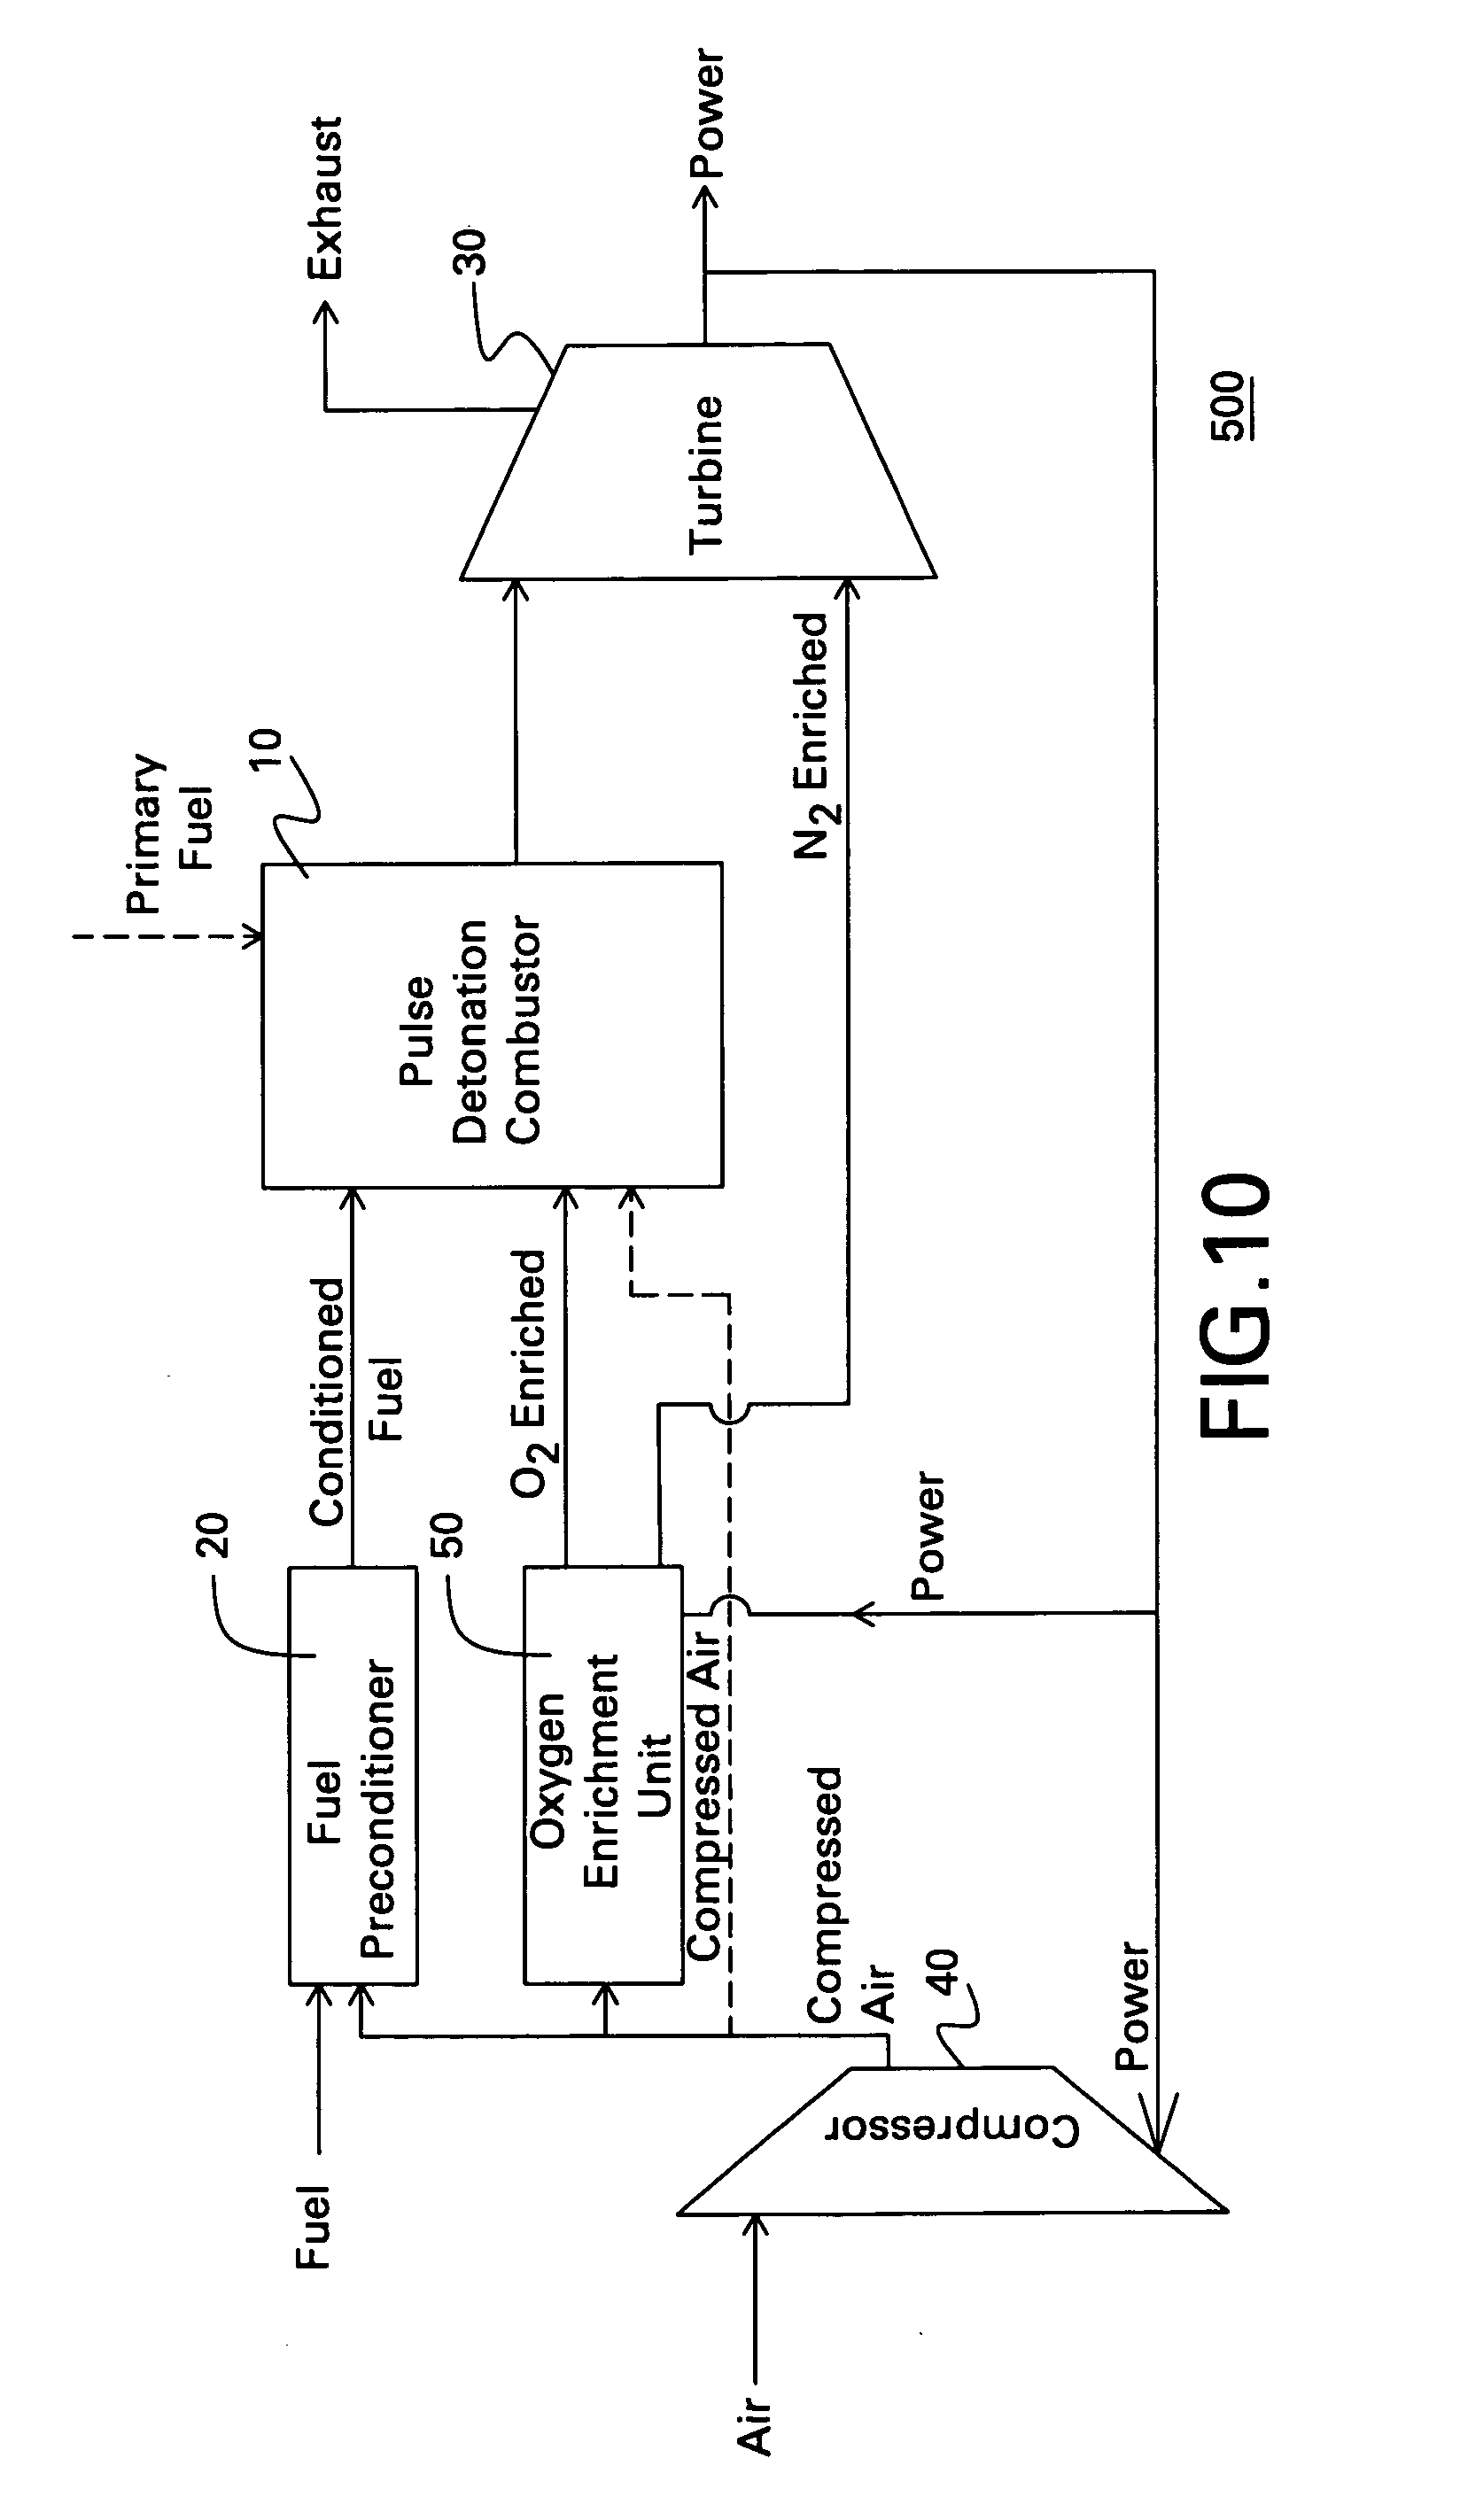 Patent US Pulse detonation power system and plant